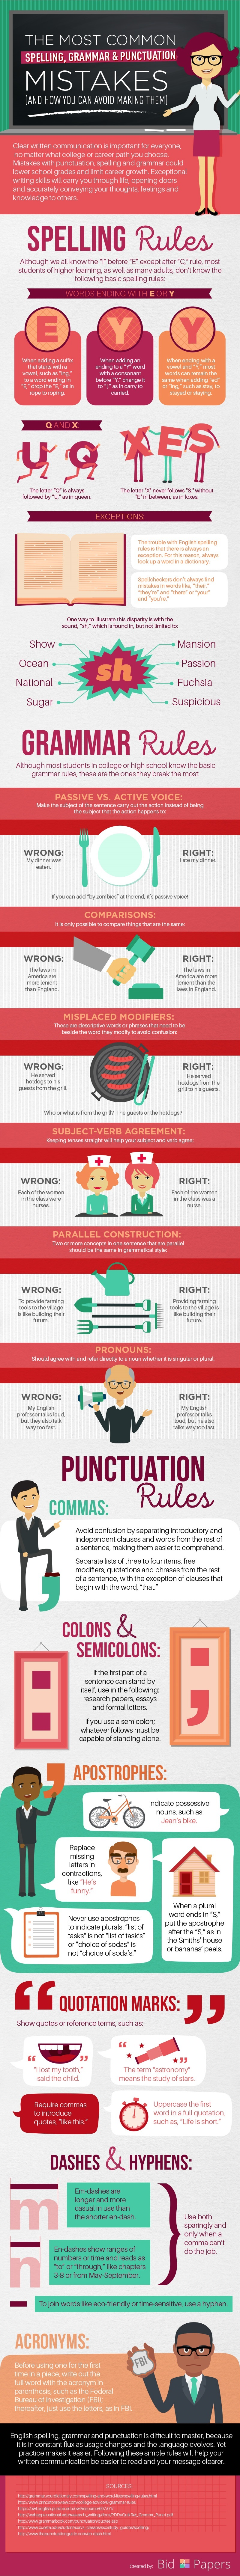 Most Common Spelling Grammar Punctuation Mistakes